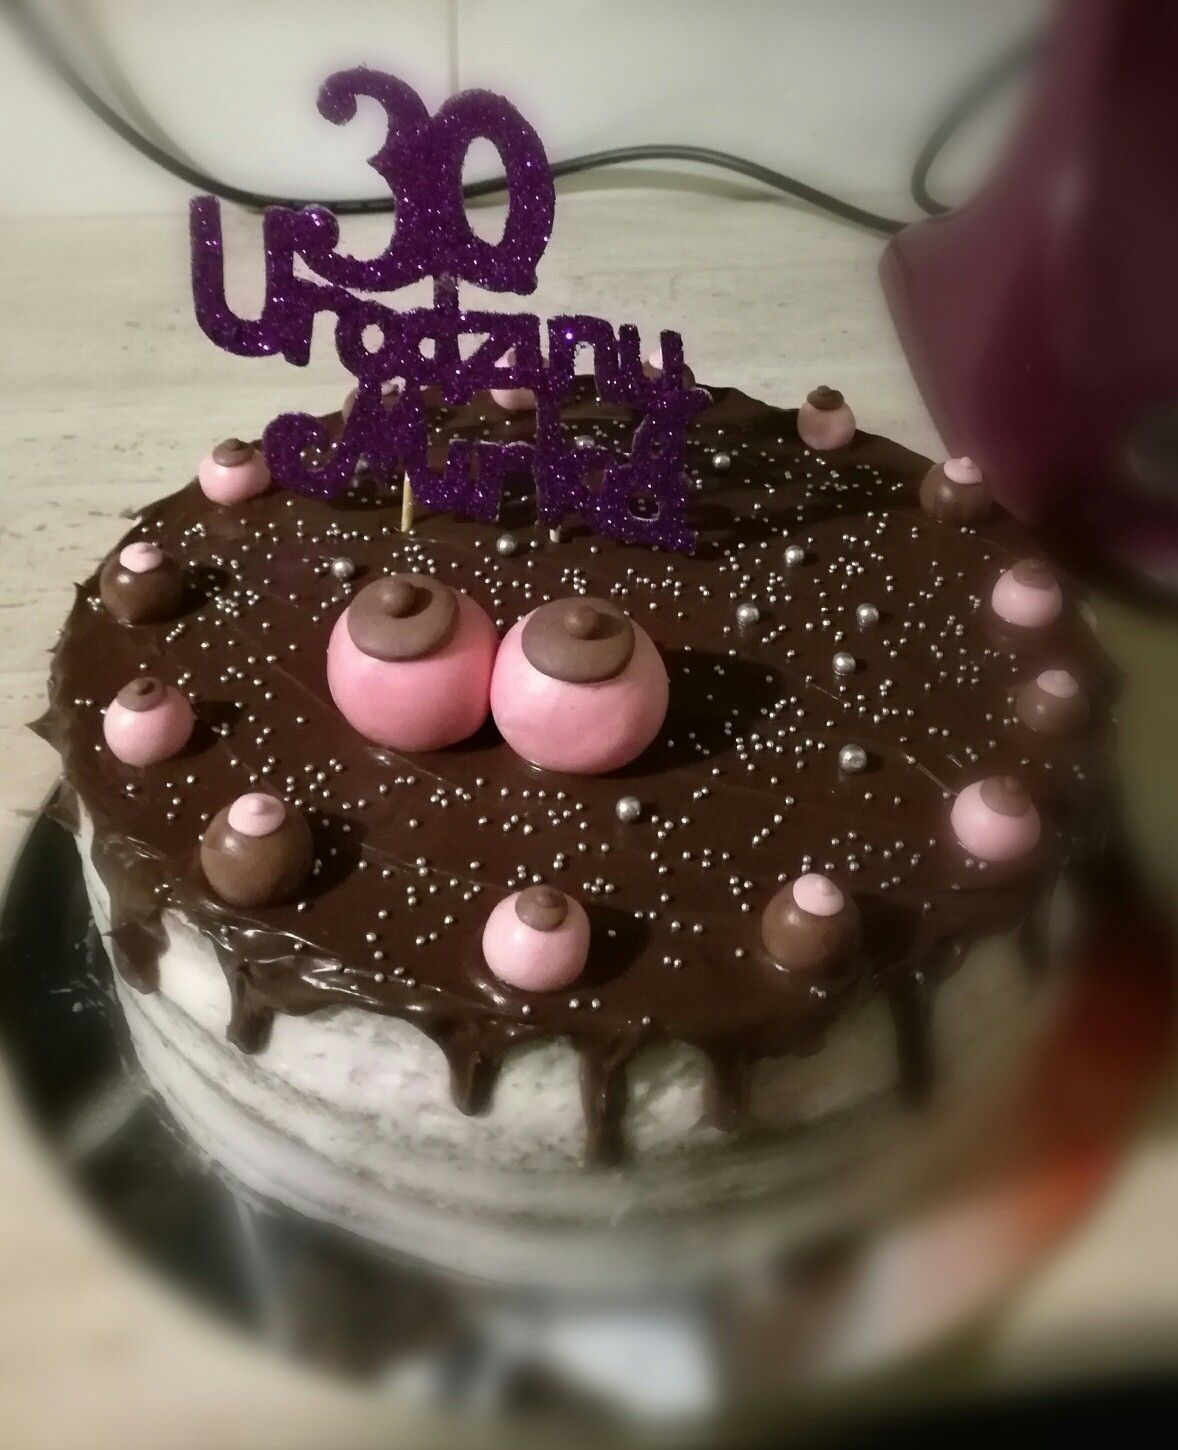 Cake with a lot of boobs for 30ty birthday...cream and chocolate taste